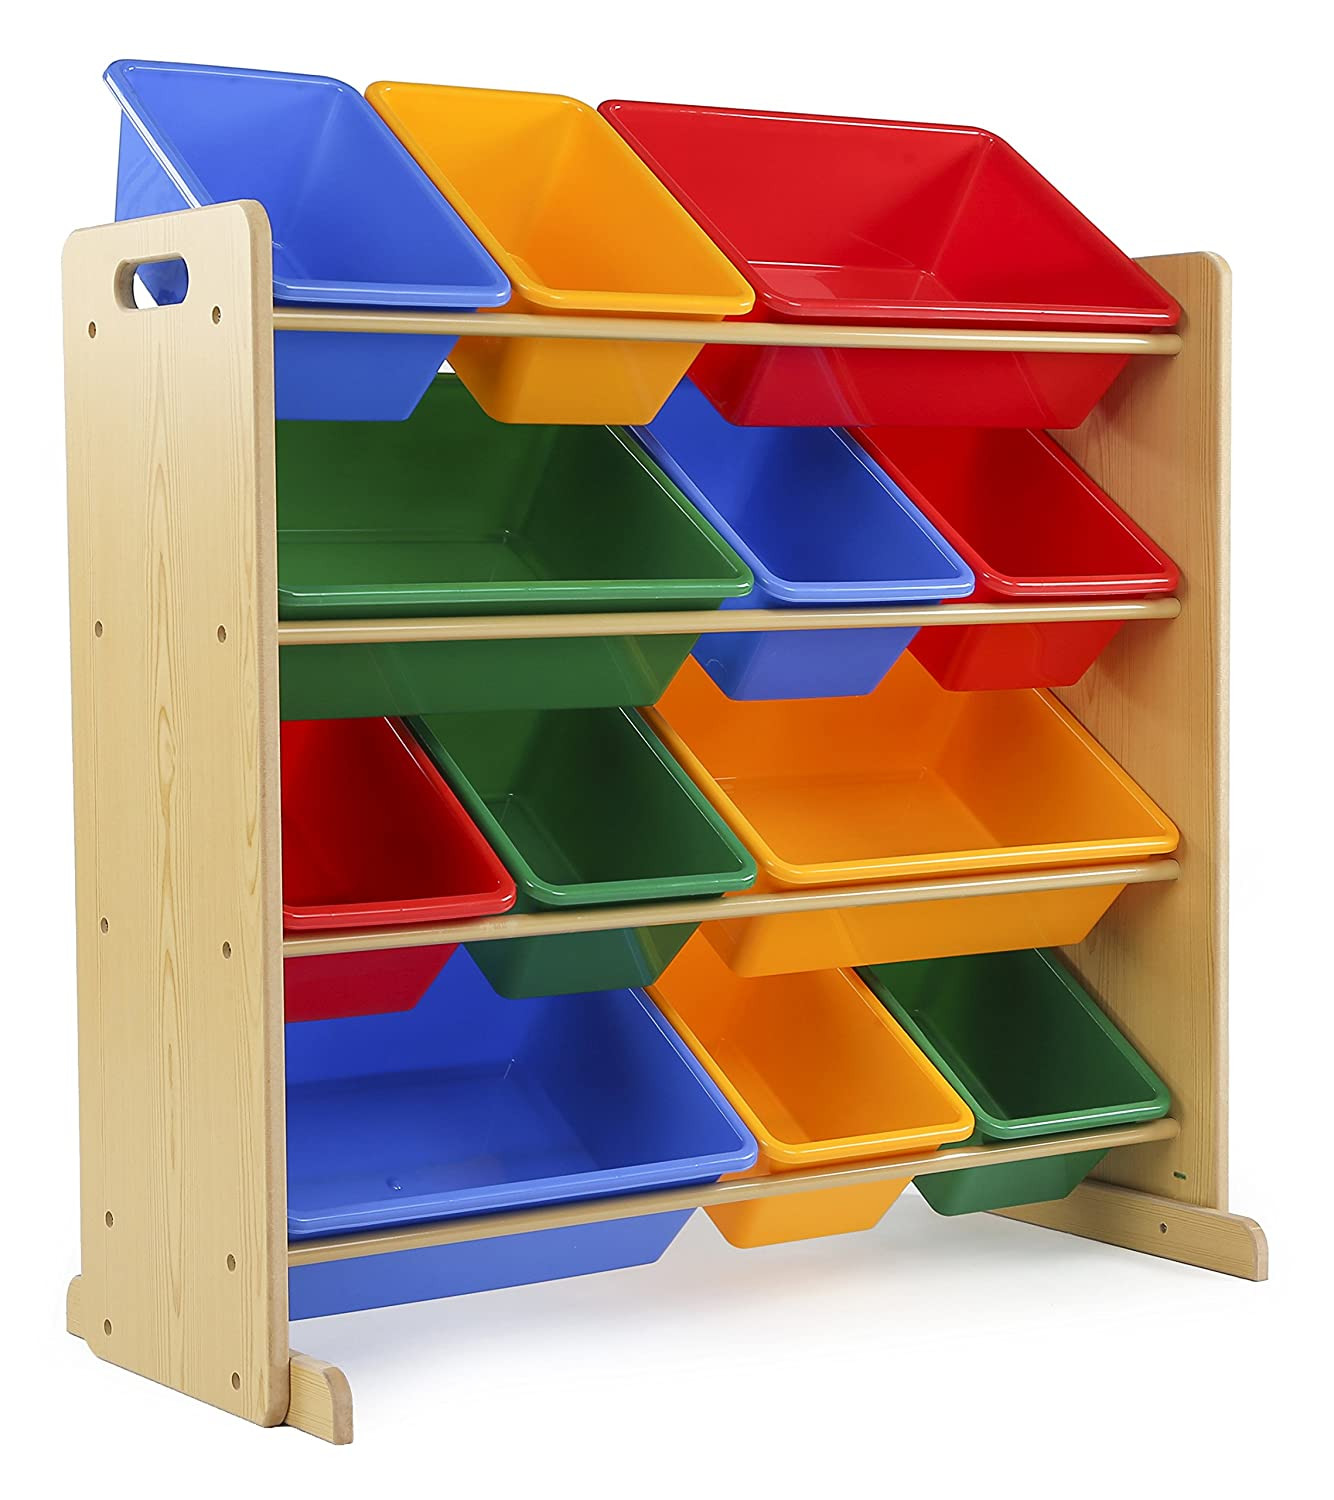 Kids' Toy Storage Organizer - 12 Plastic Bins Various Colors Available